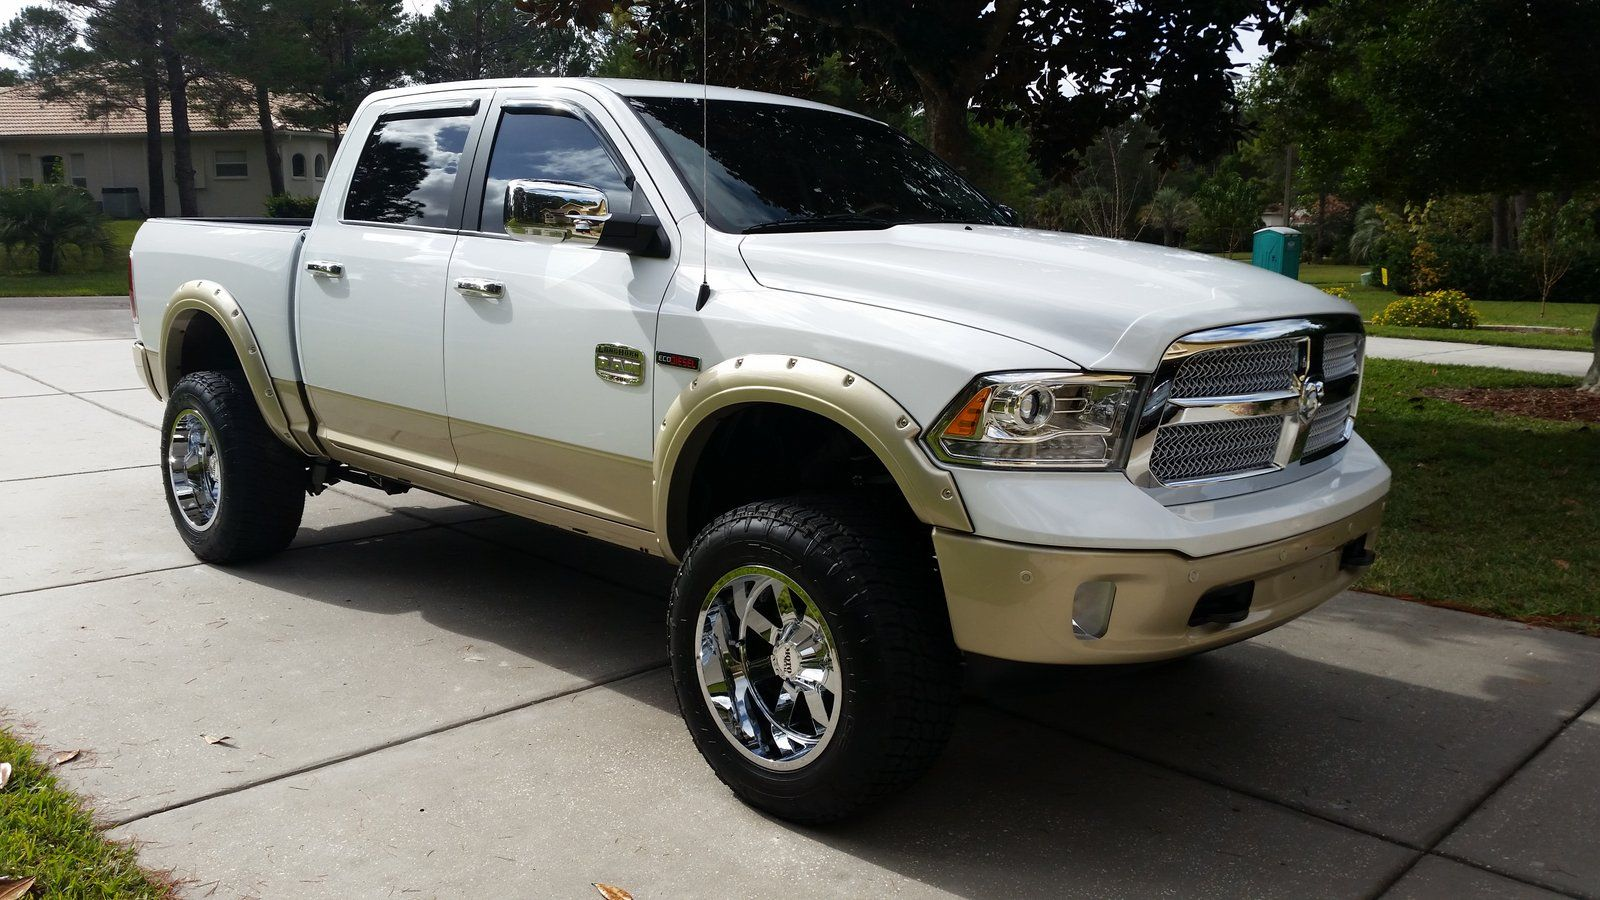 4x4 and longhorns on pinterest 1000 ideas about dodge ram longhorn